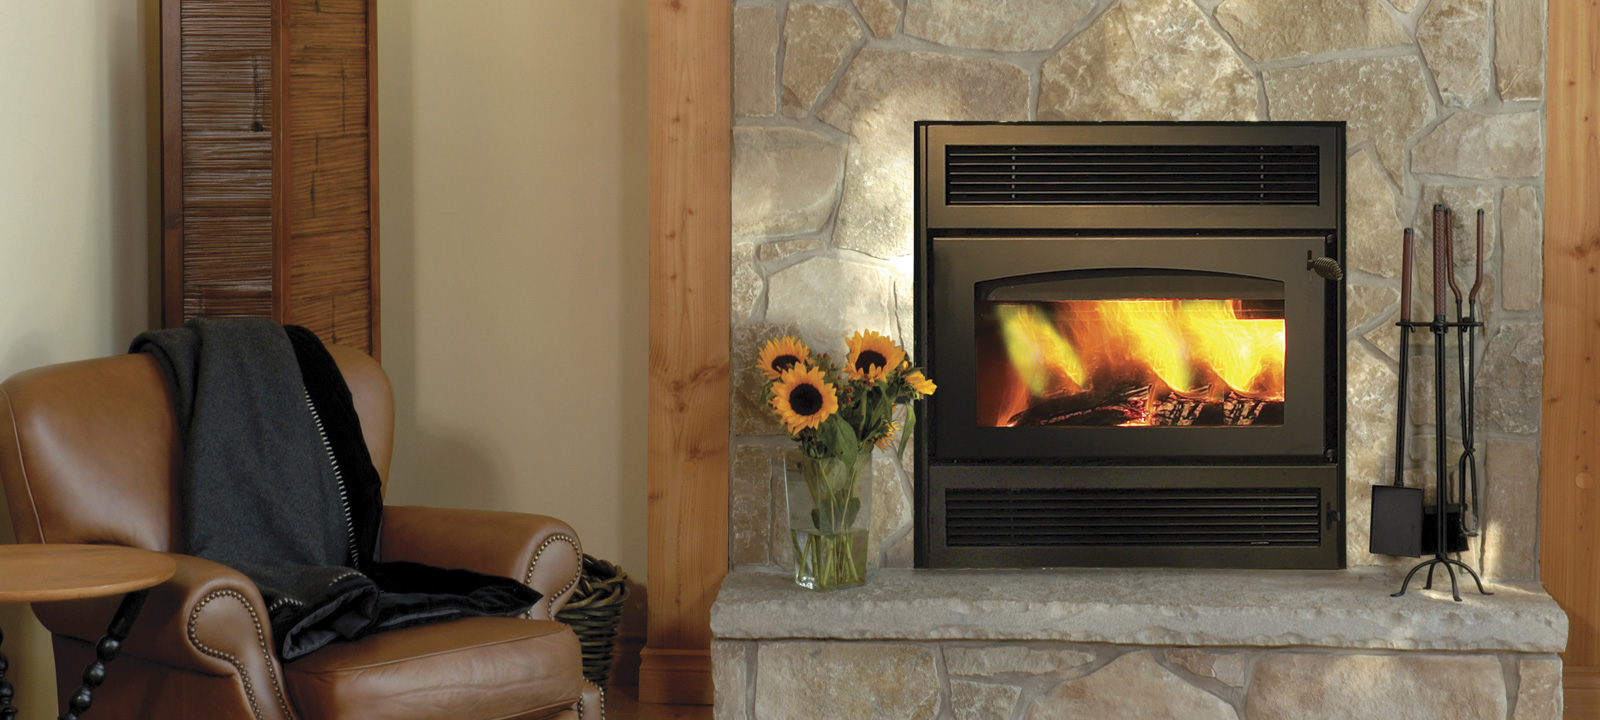 Modern  Contemporary Fireplace Manufacturers  Gas Inserts  Fireplace Accessories  Zone Heating